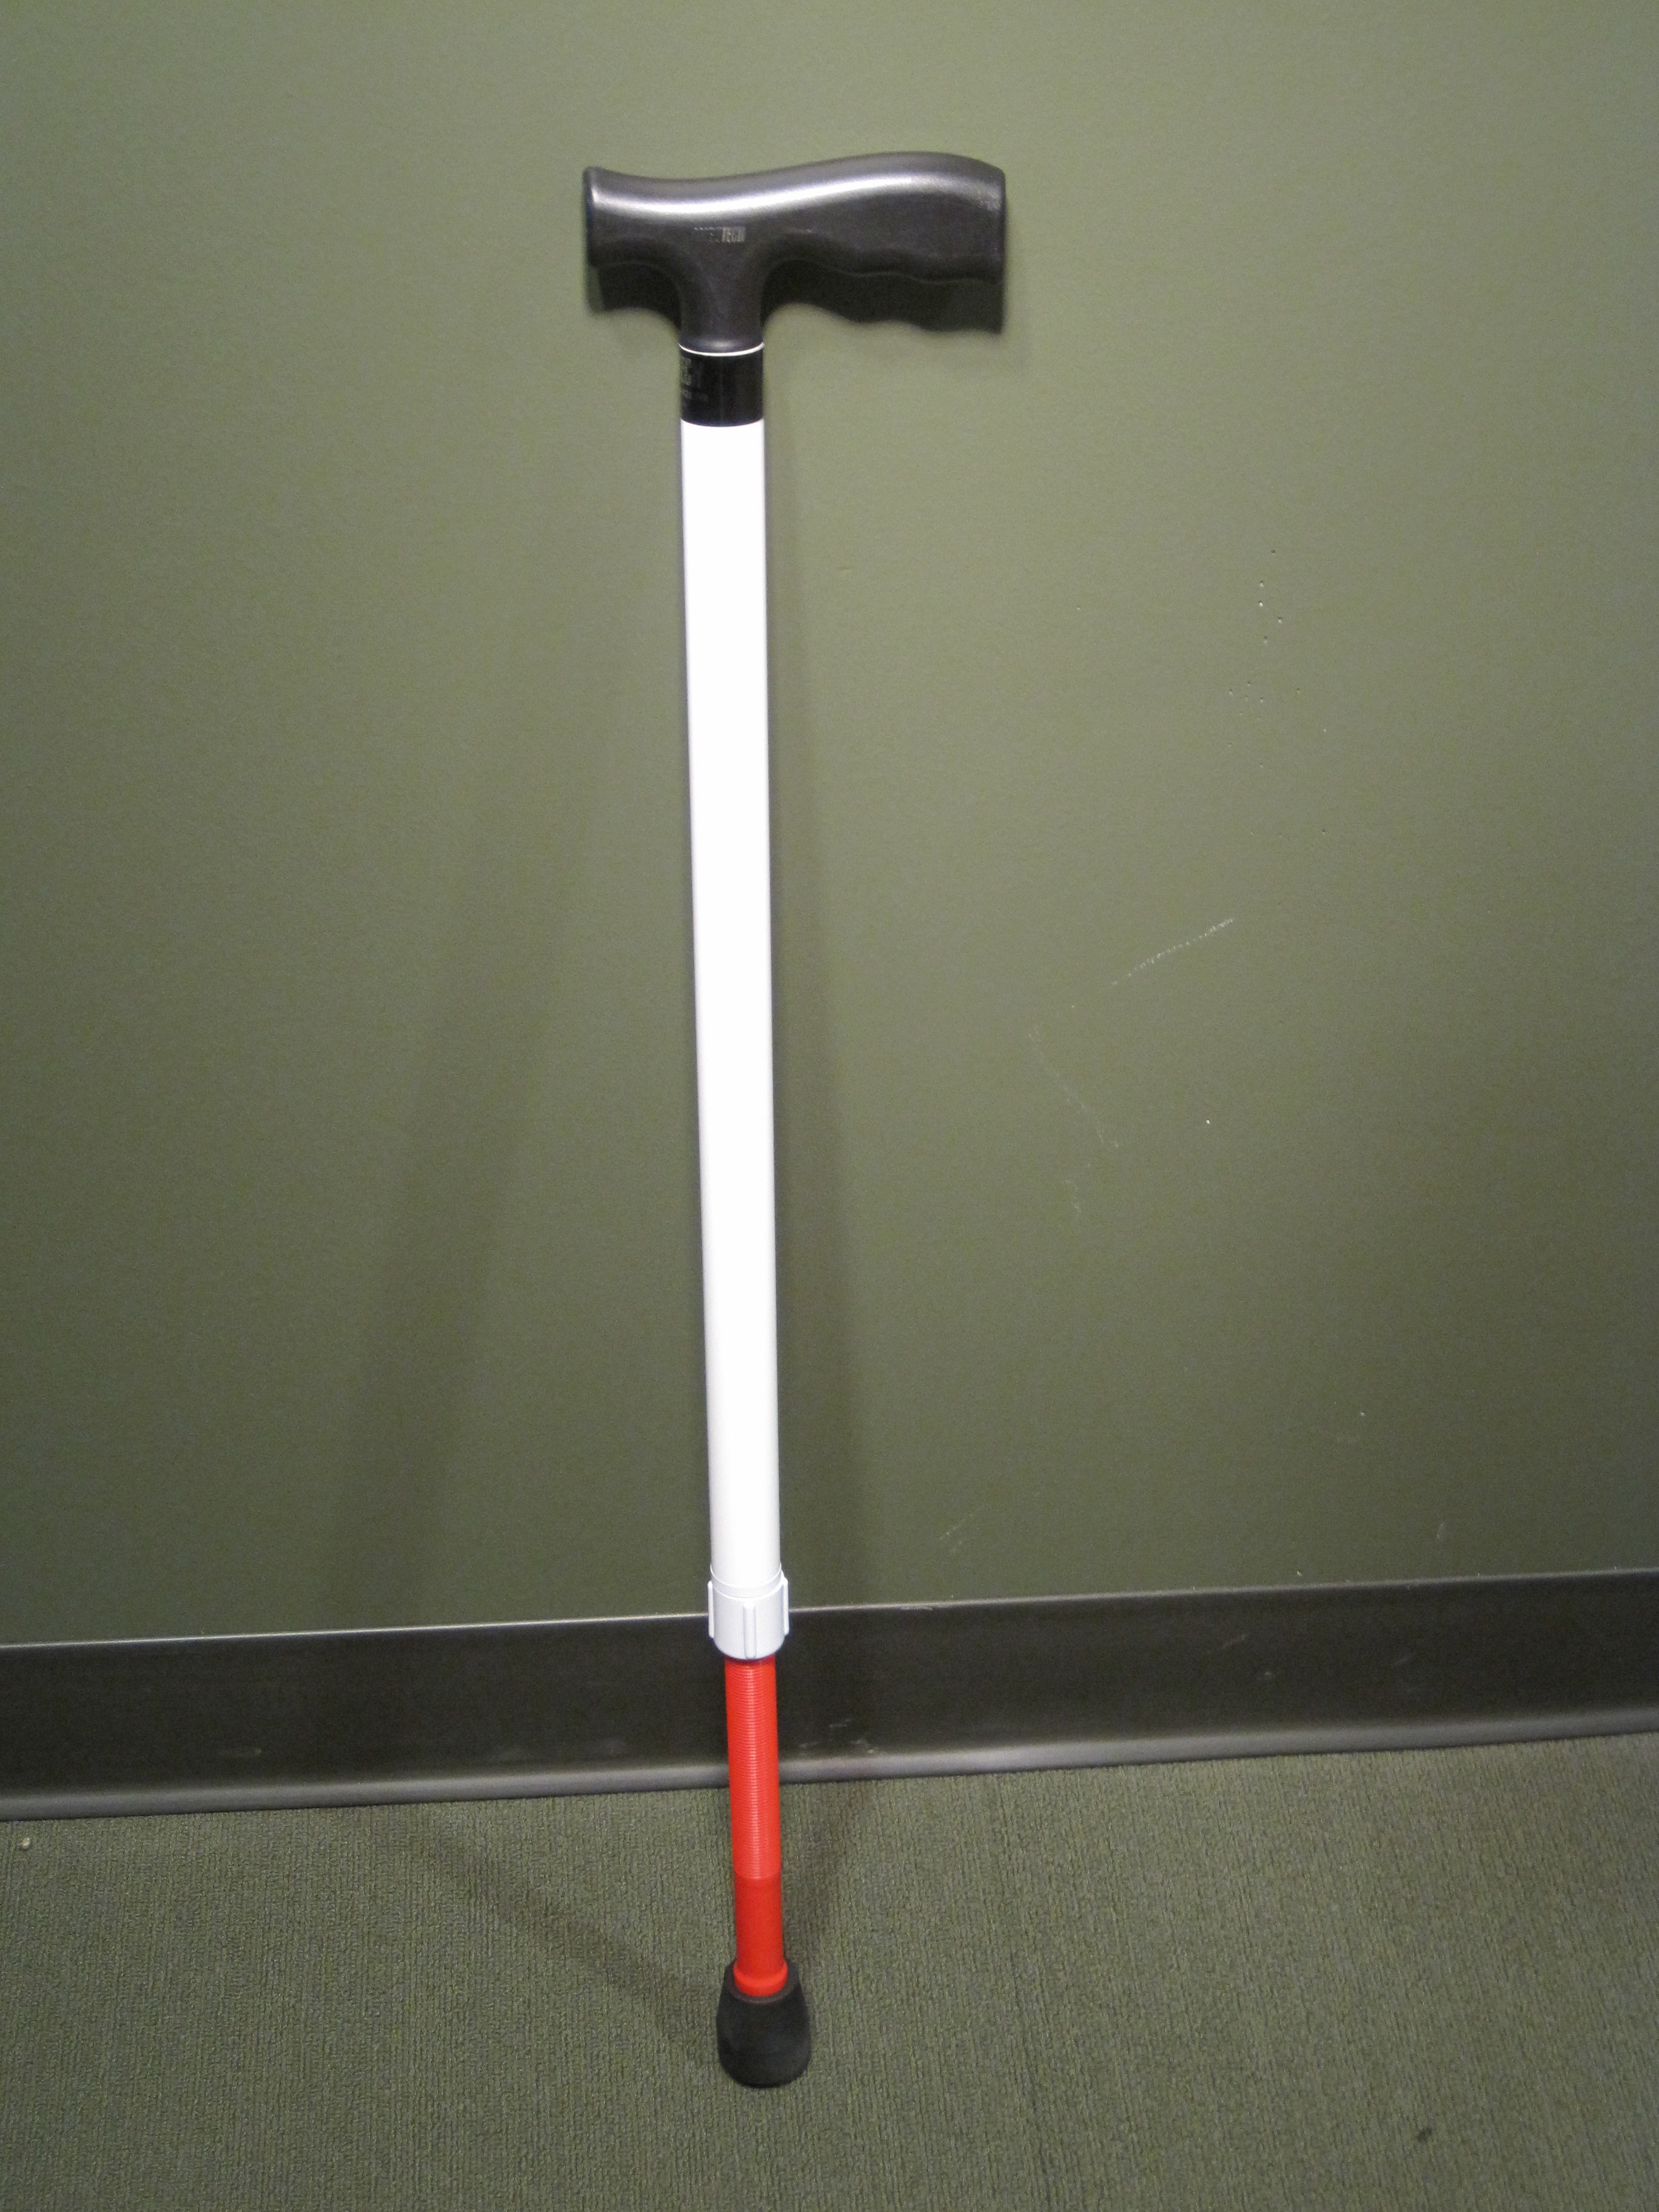 AMBUTECH ADJ SUPPORT CANE T-HANDLE EXTRA LENGTH